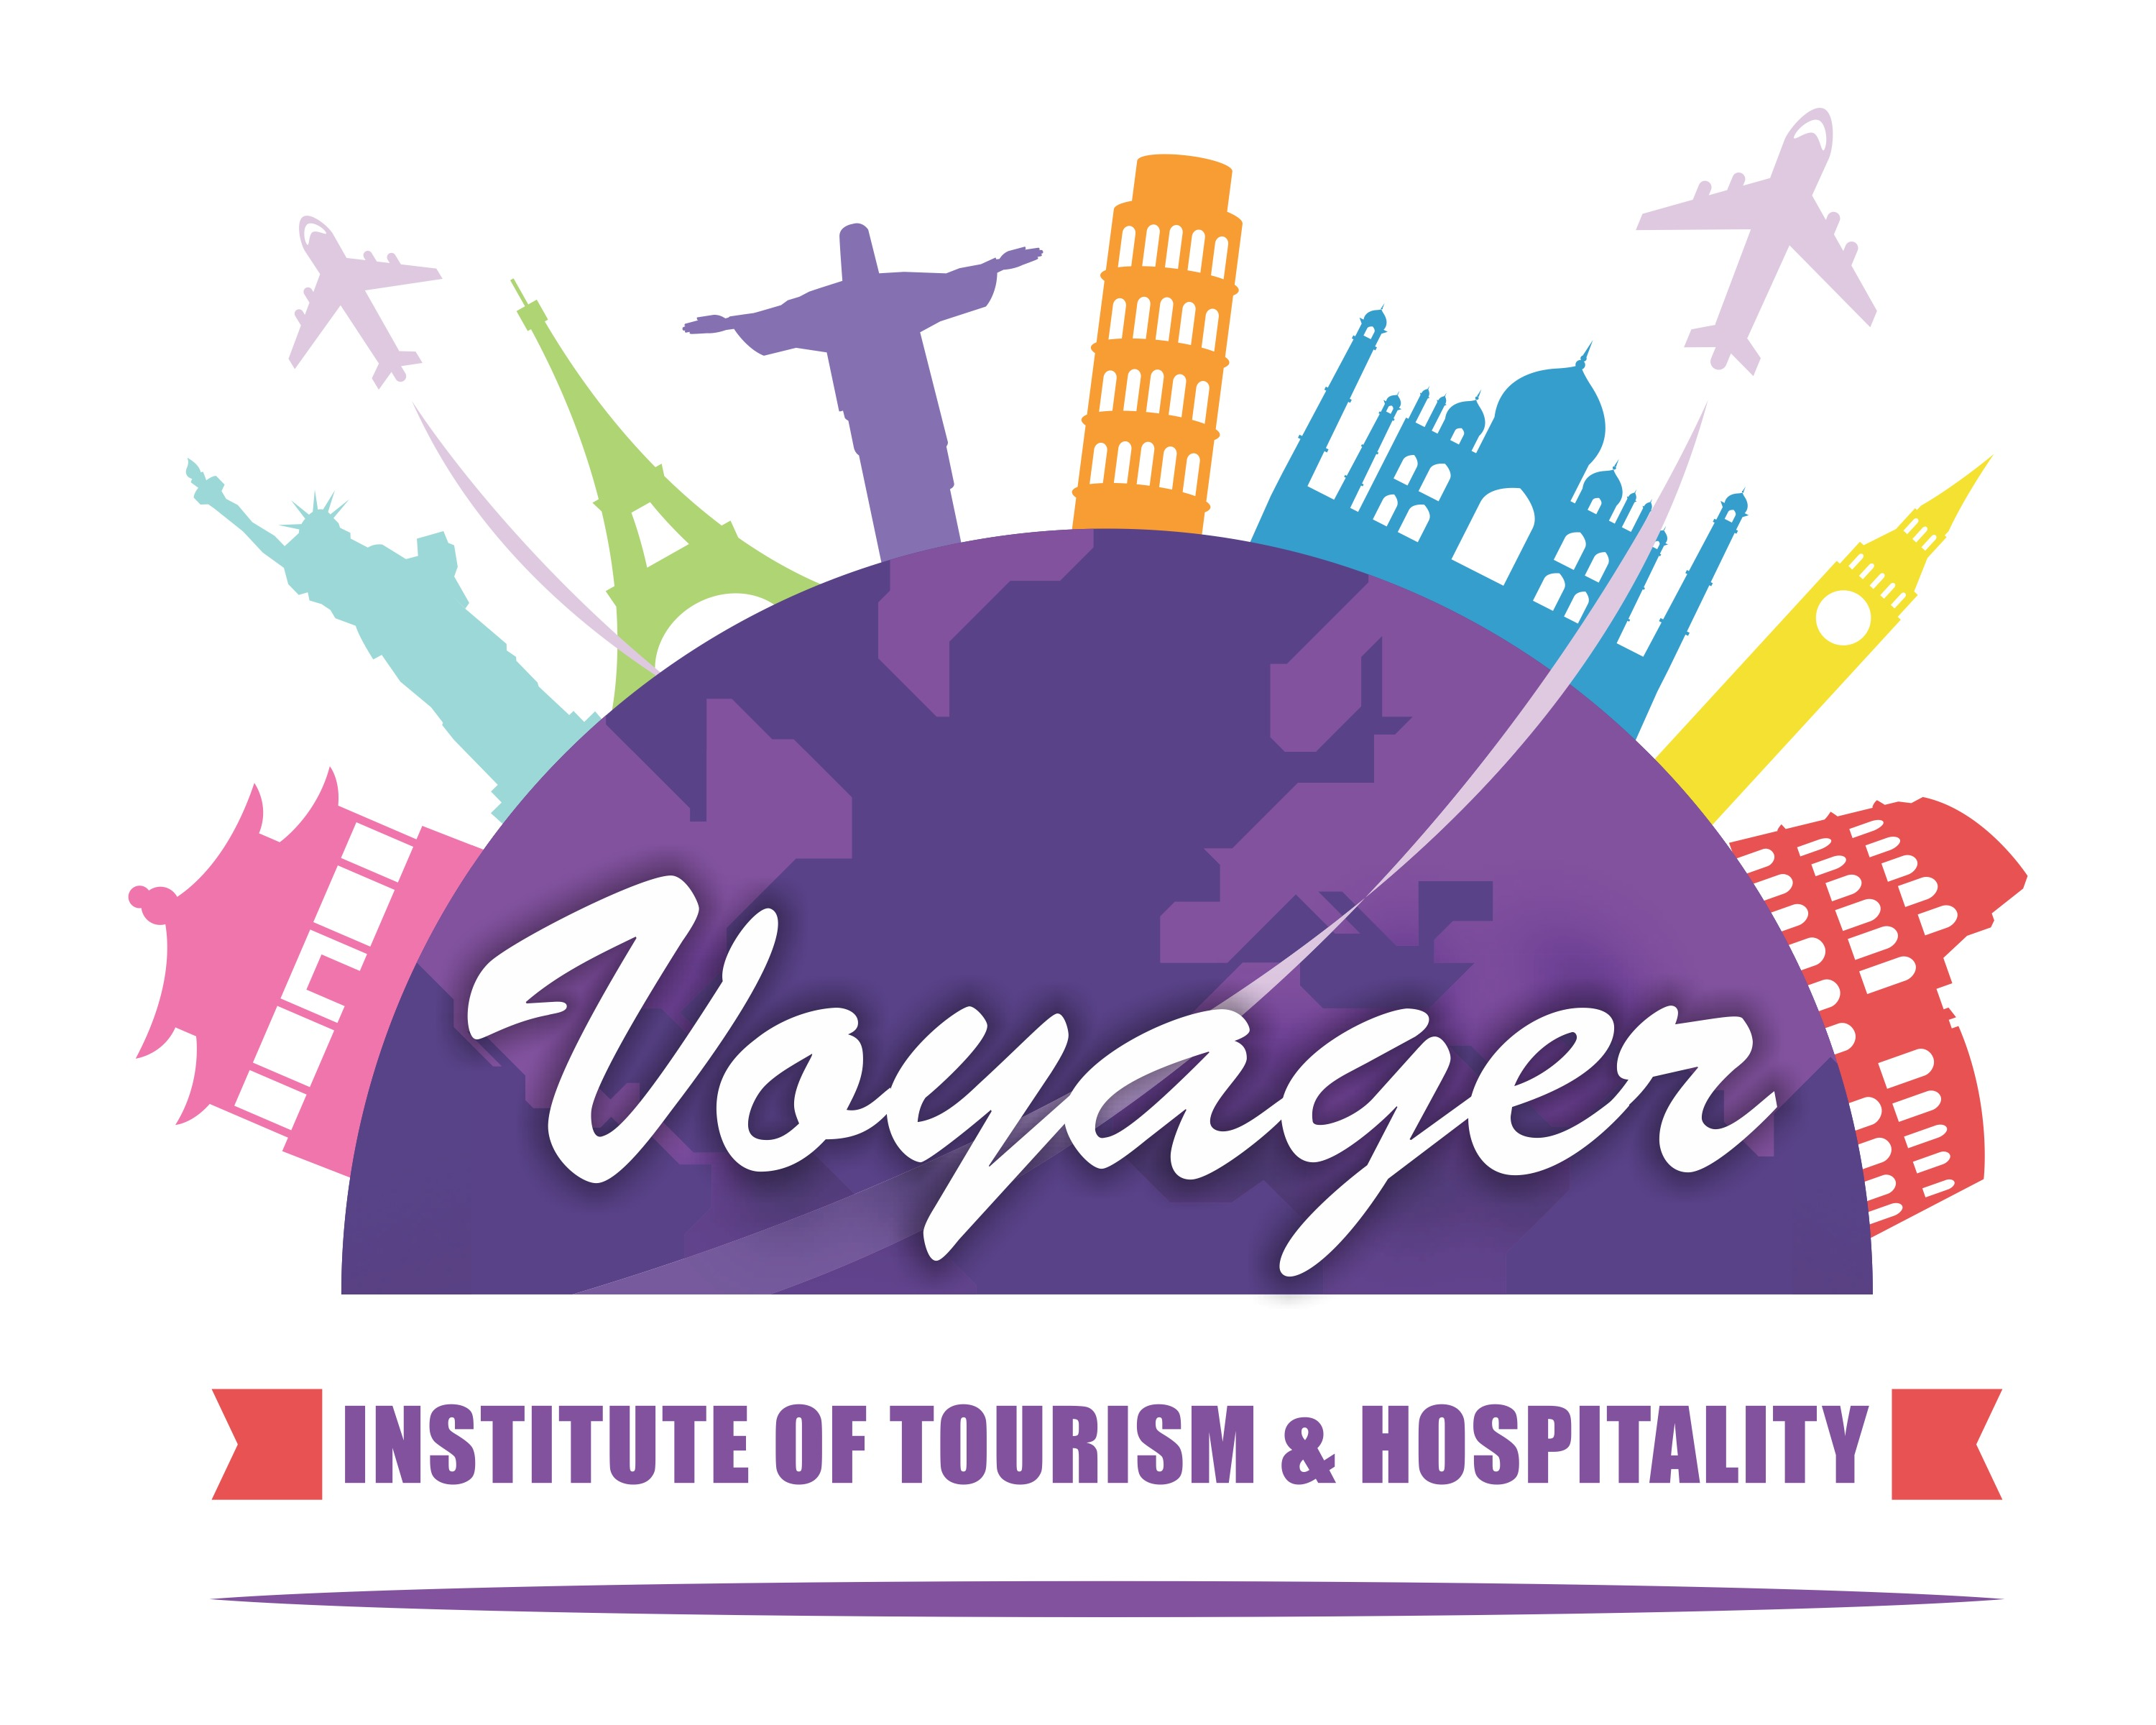 Voyager Institute of Tourism & Hospitality